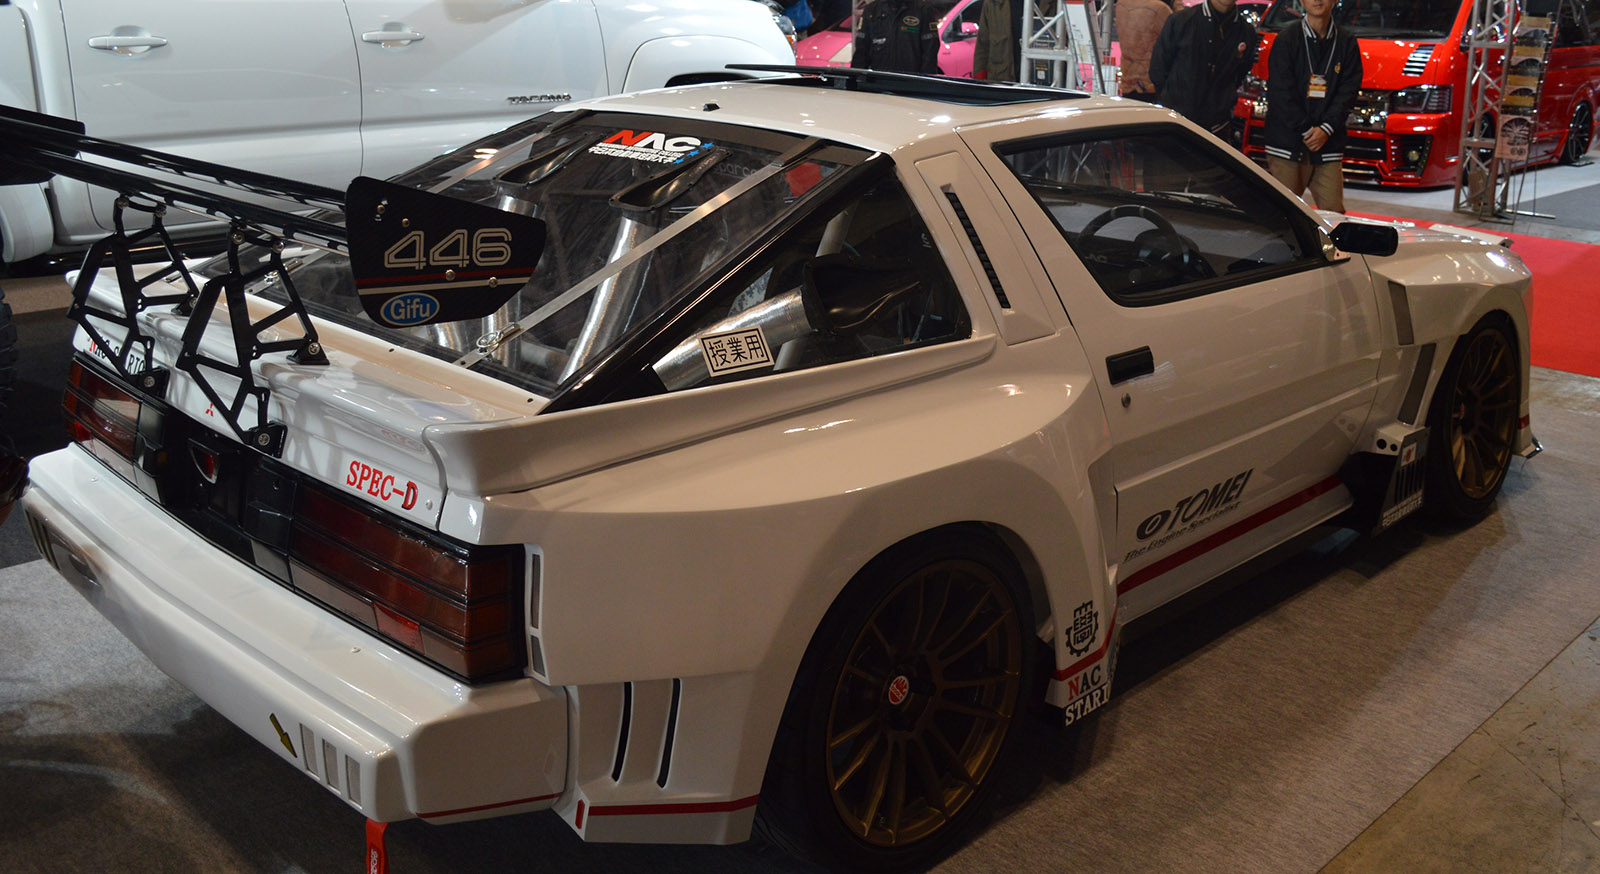 Nac Spec D Mitsubishi Starion With A Rb Dett on Mitsubishi Starion Parts